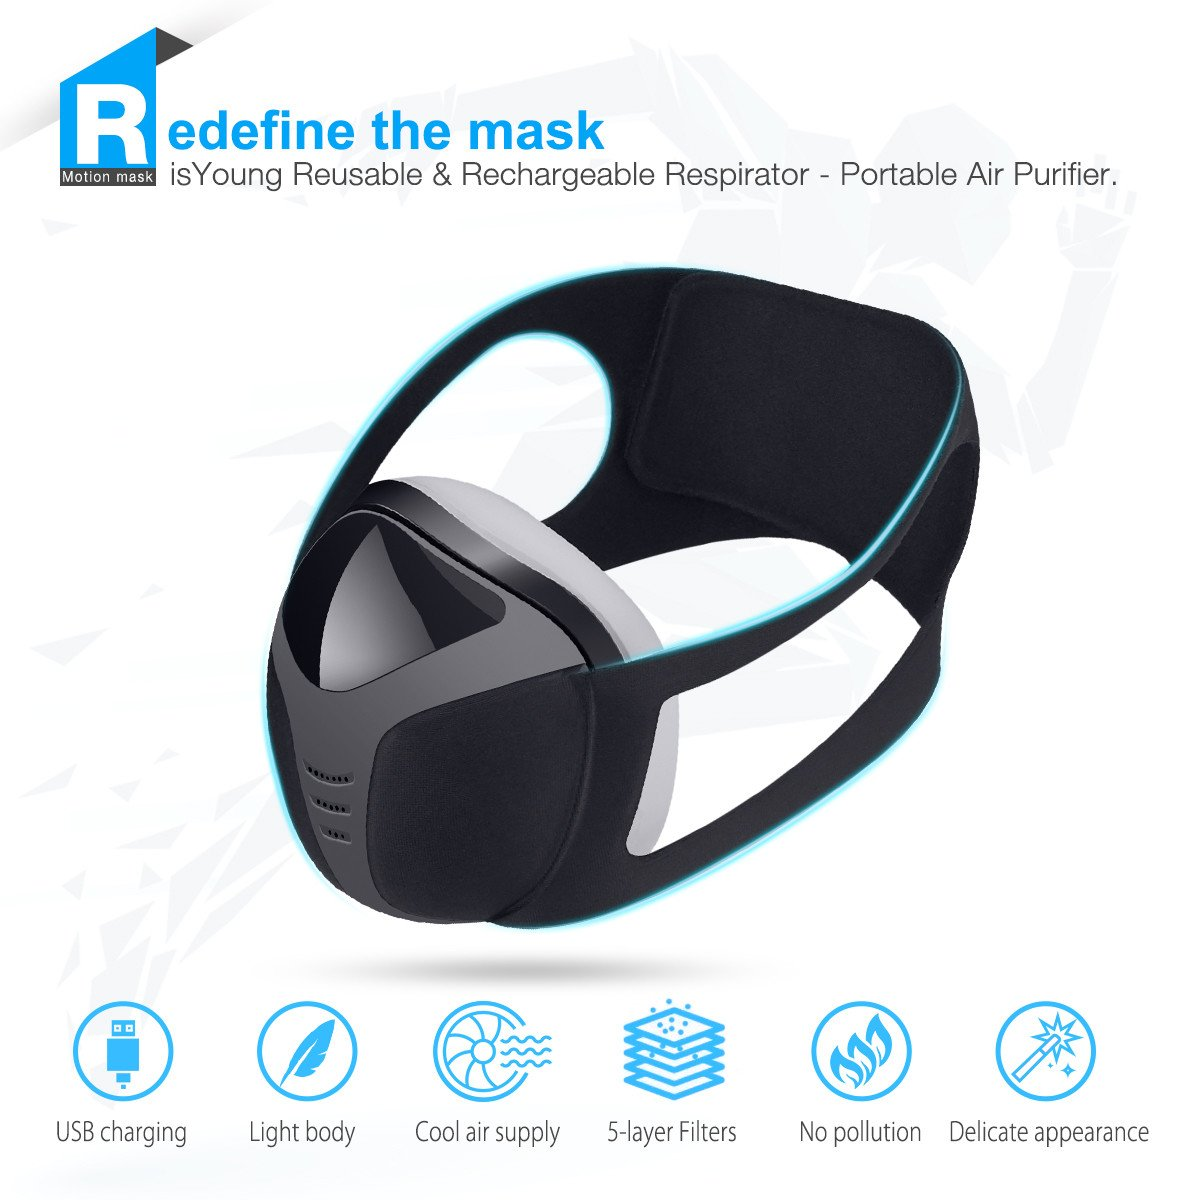 isYoung Dustproof Mask Mask Safety Respirators Workout Mask USB Reusable Workout Oxygen Mask, Perfect for PPE, Home Improvement, DIY and Gym, Running